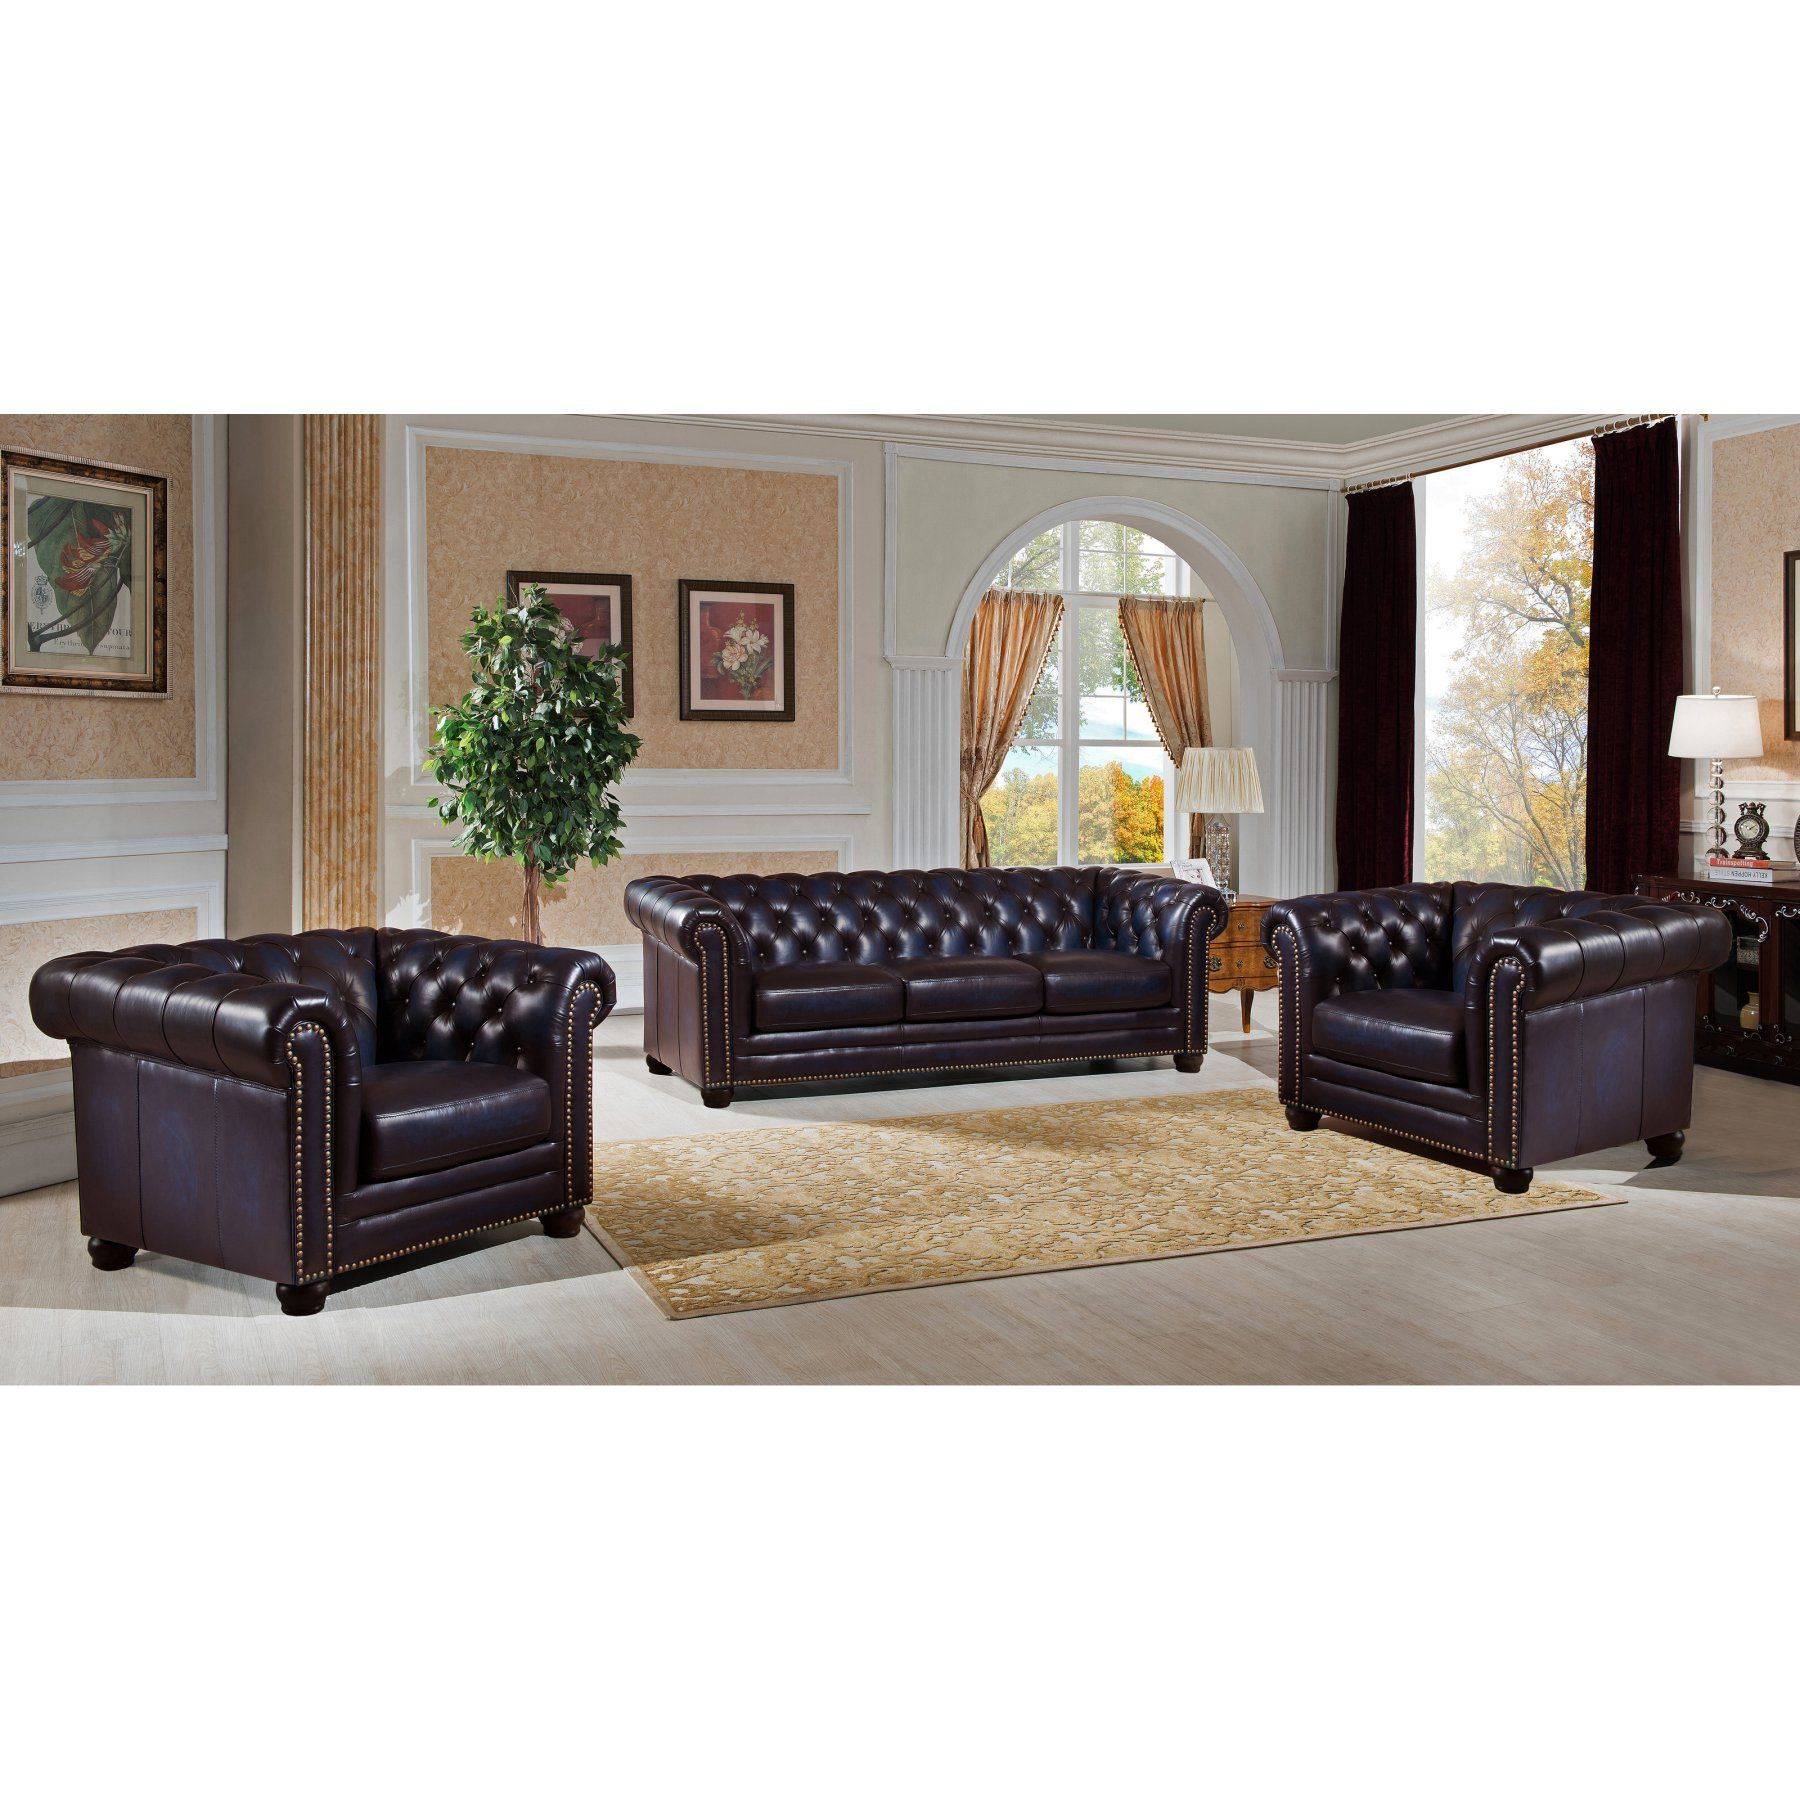 Amax Leather Dynasty Top Grain Leather 3 Piece Sofa and Armchair